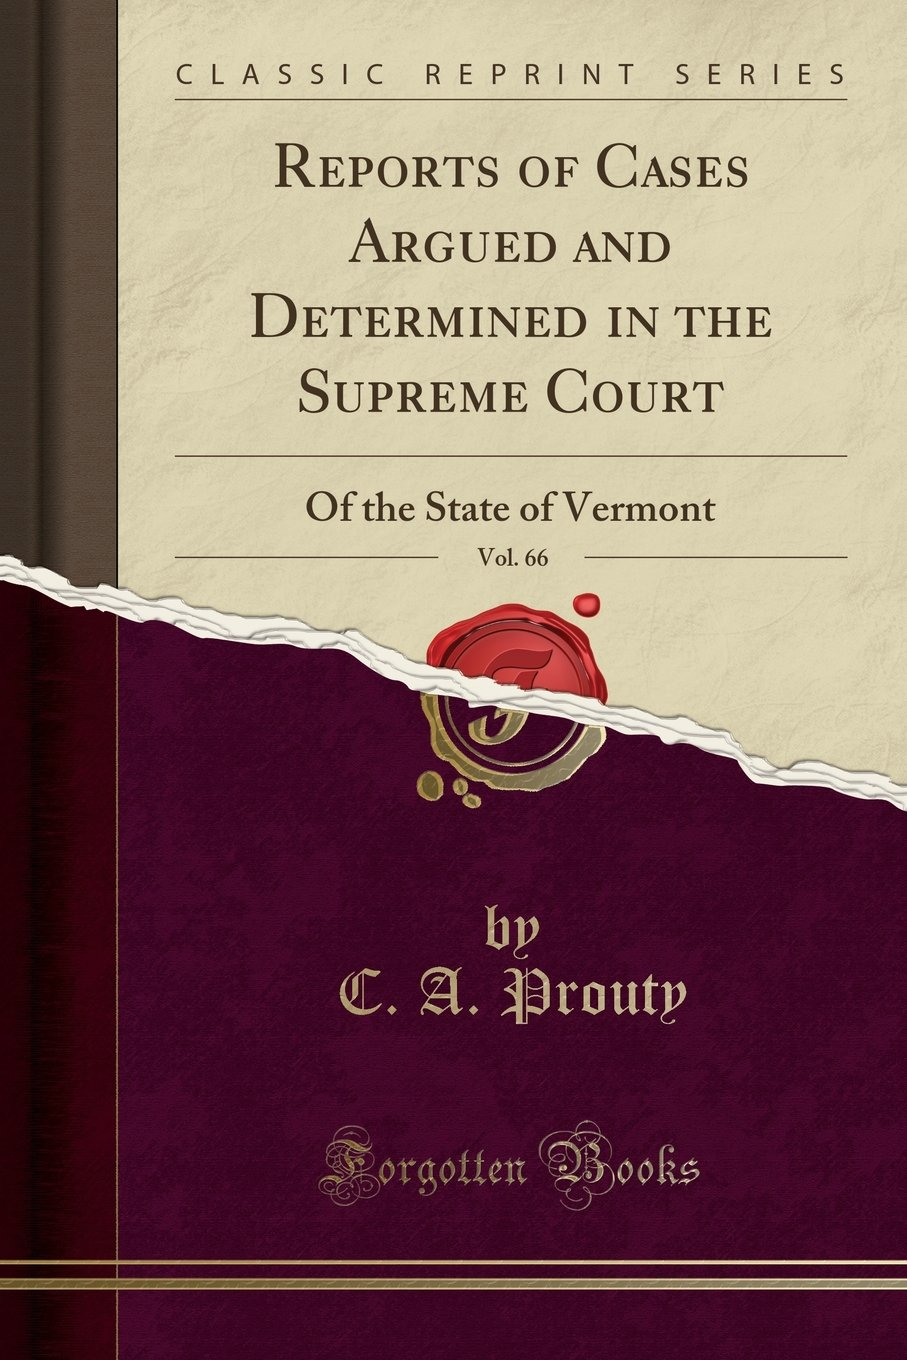 Read Online Reports of Cases Argued and Determined in the Supreme Court, Vol. 66: Of the State of Vermont (Classic Reprint) ebook